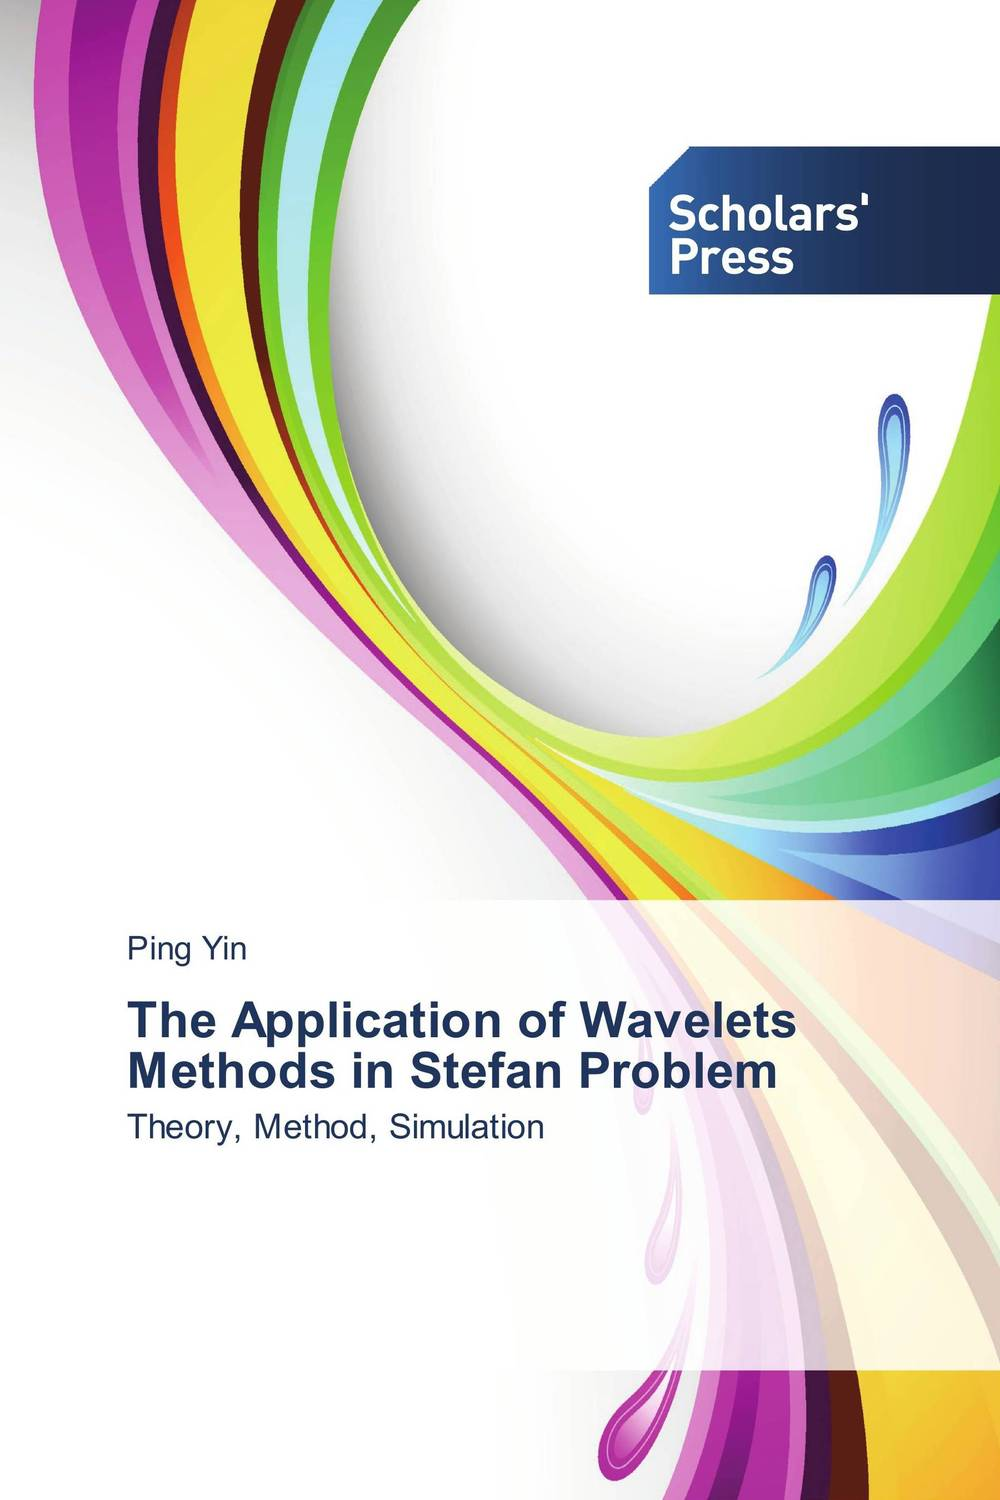 The Application of Wavelets Methods in Stefan Problem analytical and numerical approximation solution of bio heat equation